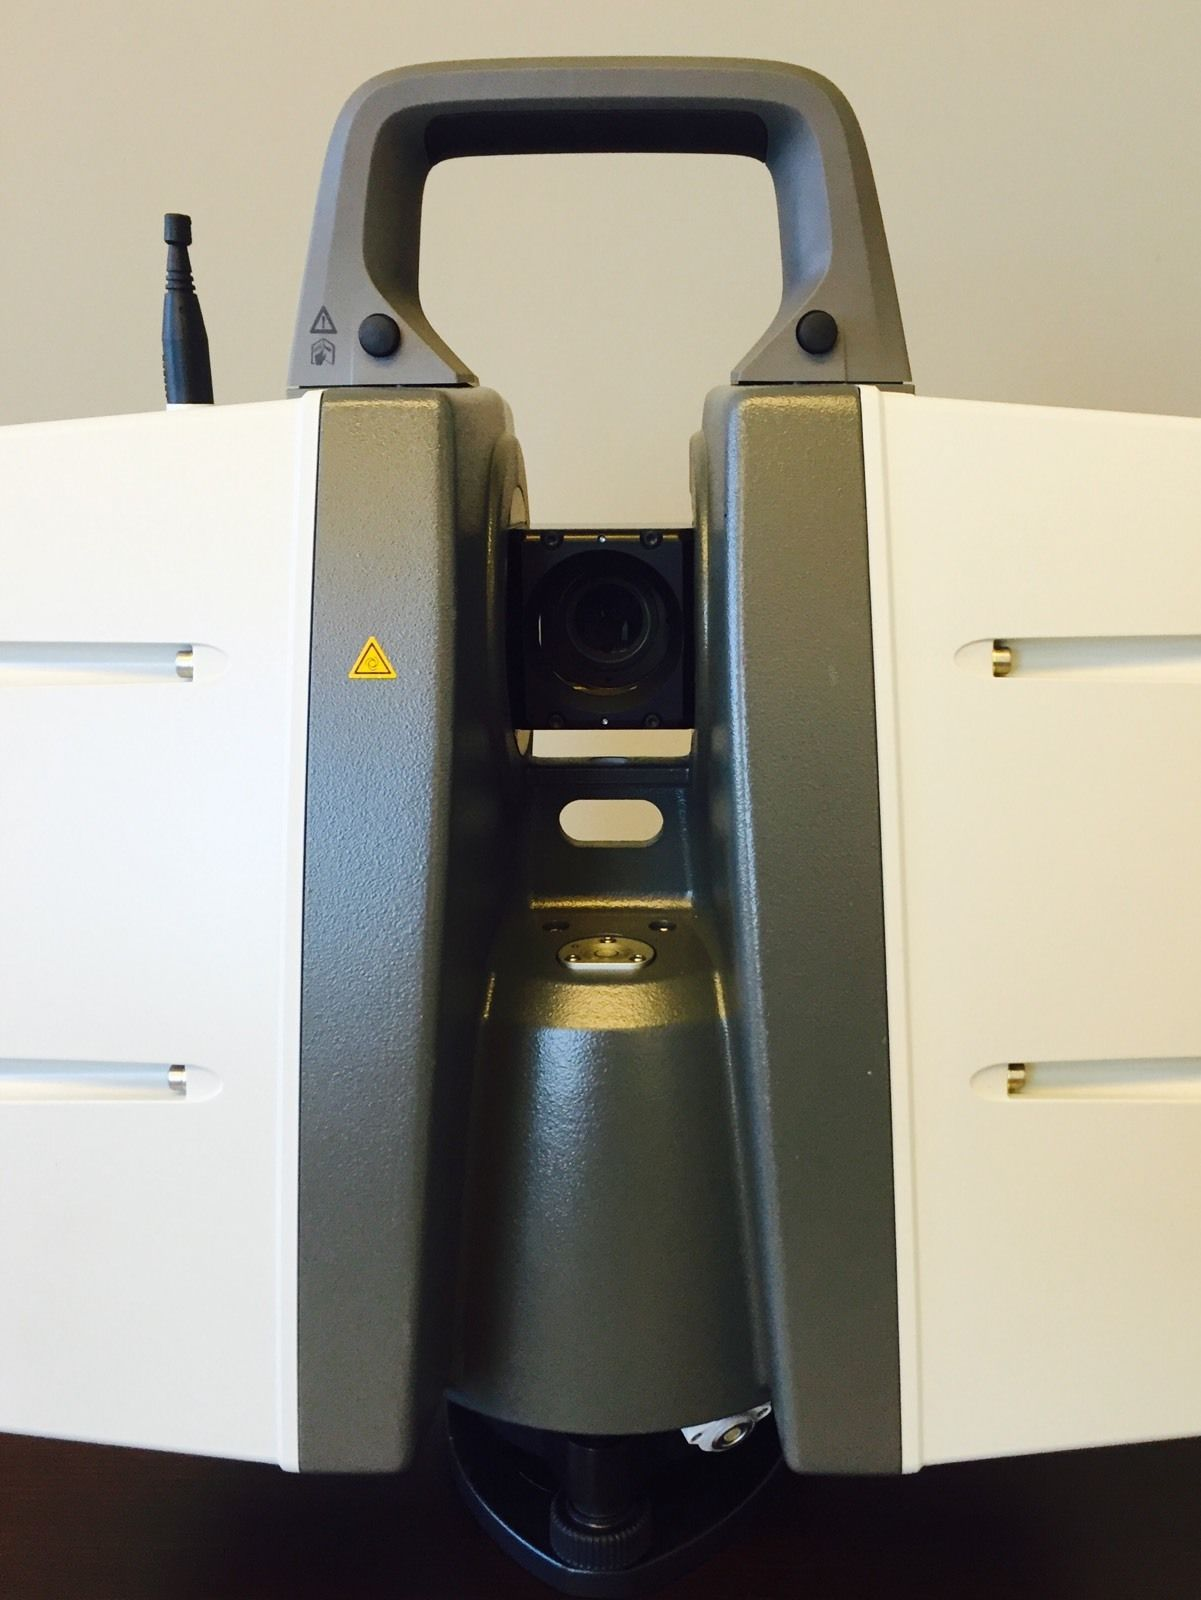 Pre-Owned Laser Scanners